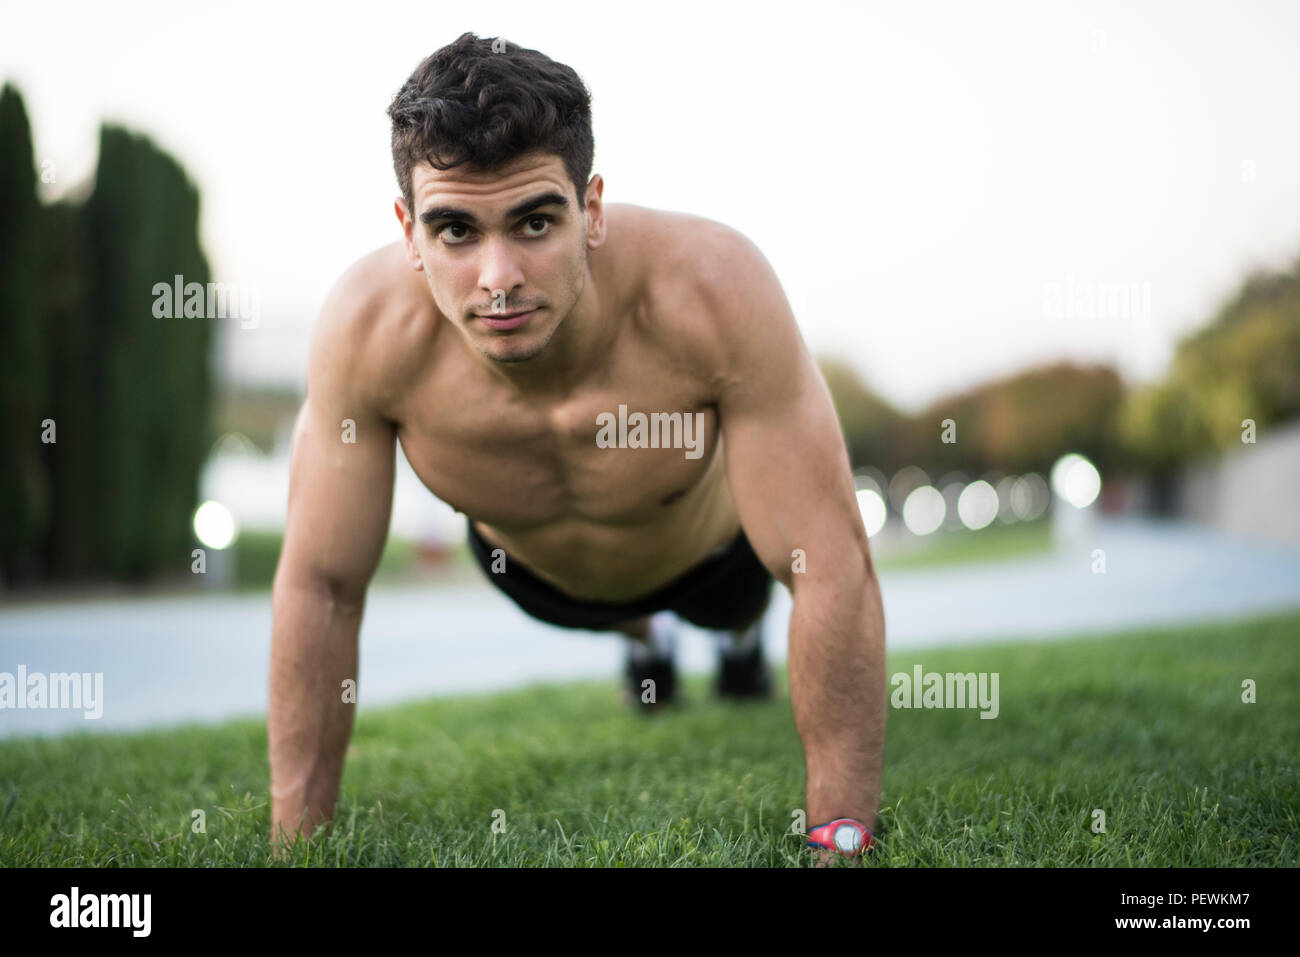 Man training fitness and running in public city park - Stock Image